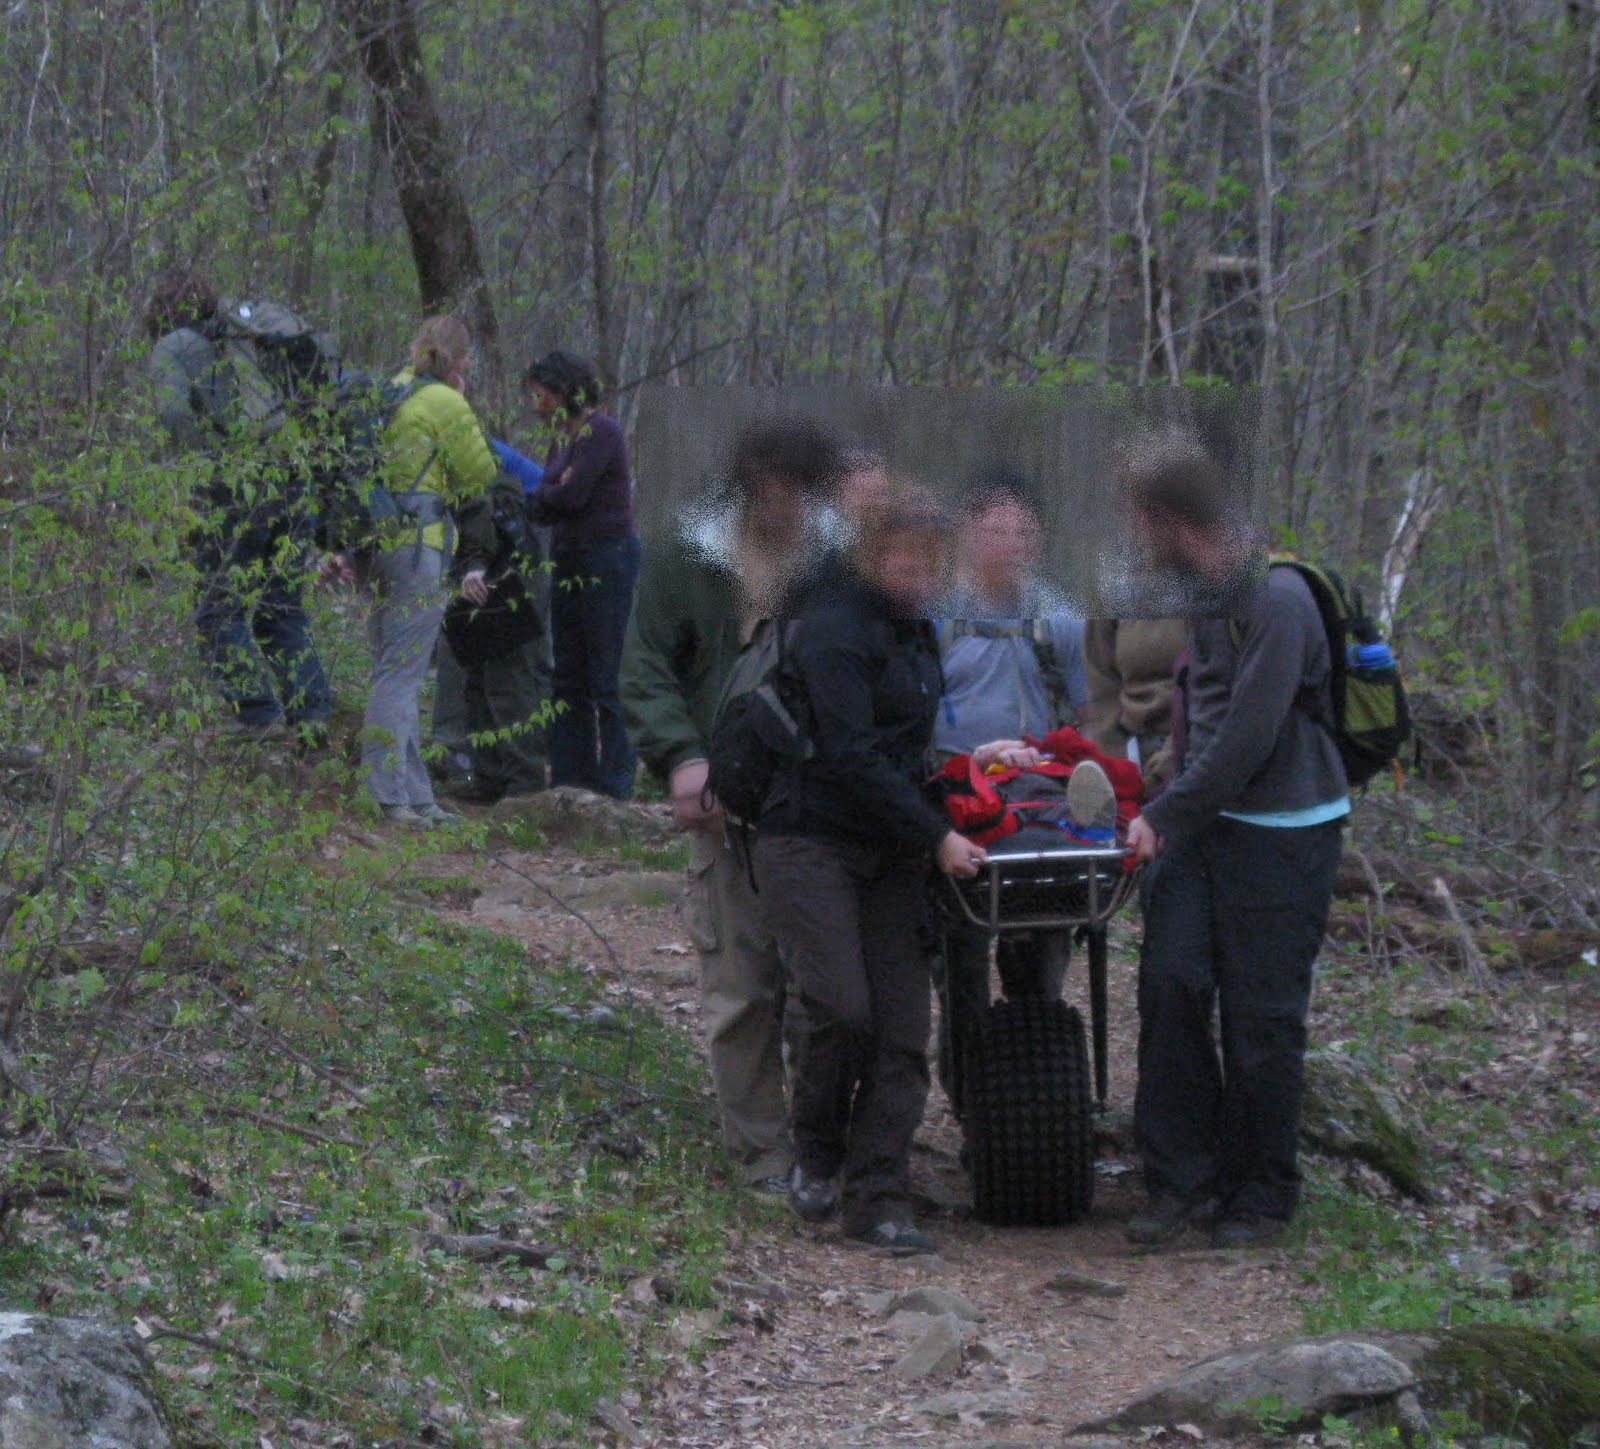 Hiking Old Rag Tips: Old Rag Mountain Hikes/Patrols By RSL: ORMS TRAINING